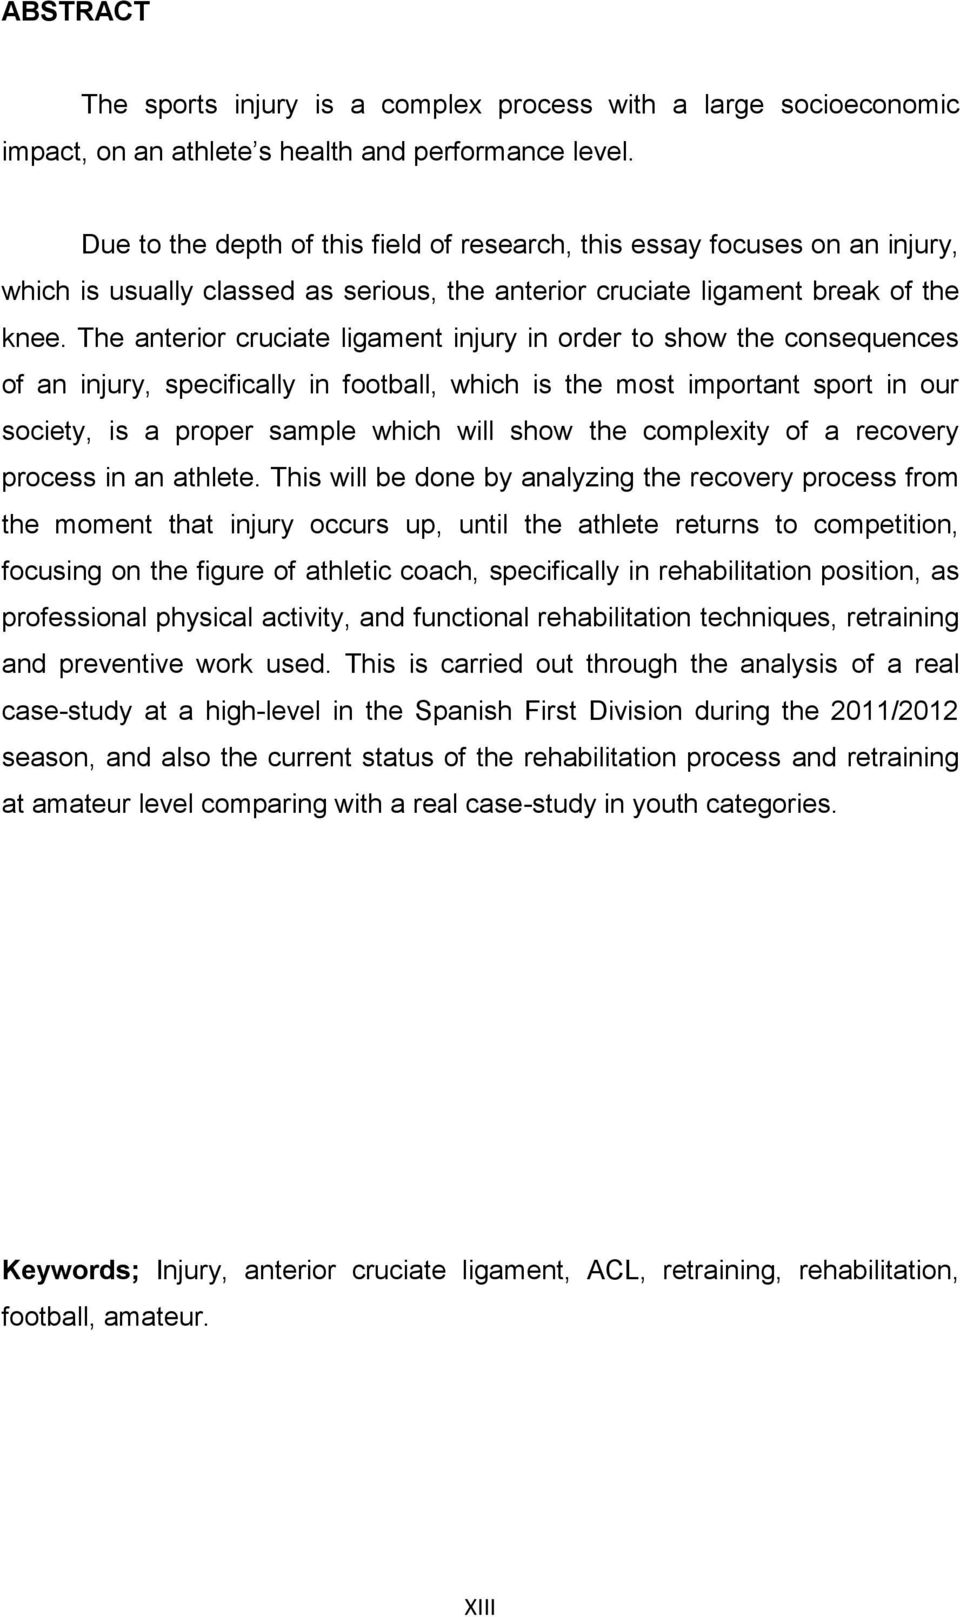 The anterior cruciate ligament injury in order to show the consequences of an injury, specifically in football, which is the most important sport in our society, is a proper sample which will show